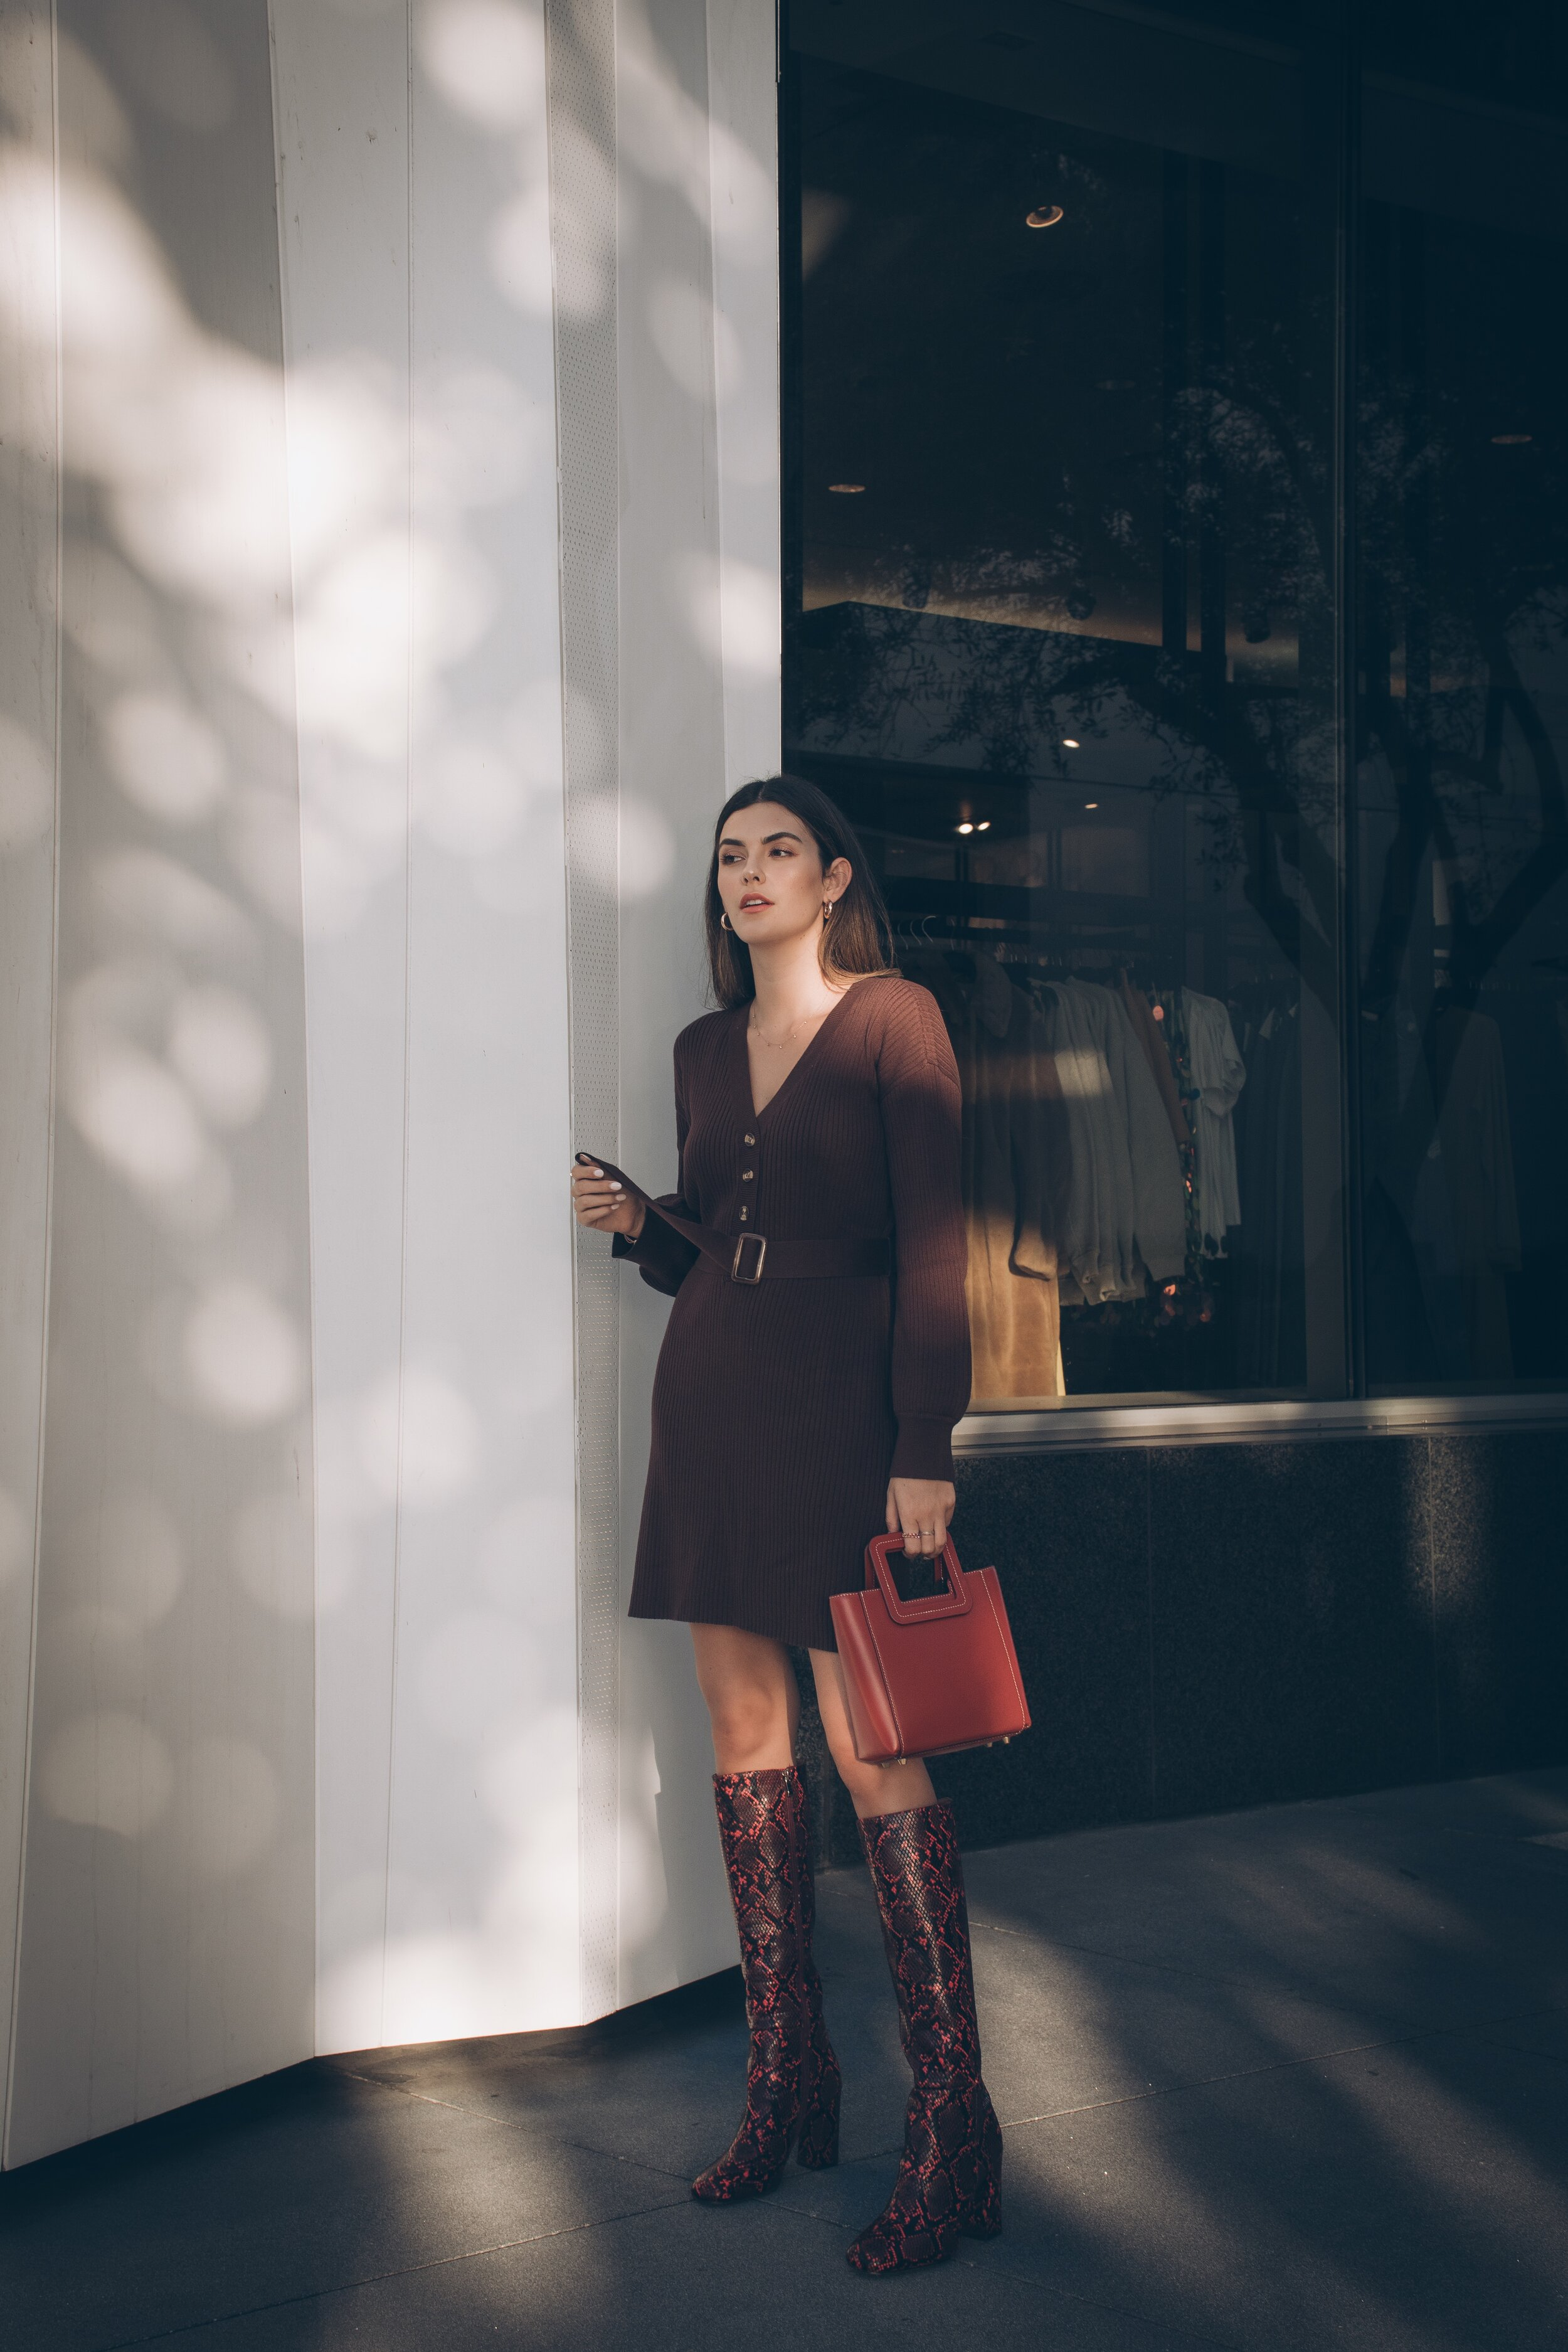 Statement Boots: 3 Boot Trends I'm Loving Julia Friedman wearing Song of Style Dress from Revolve